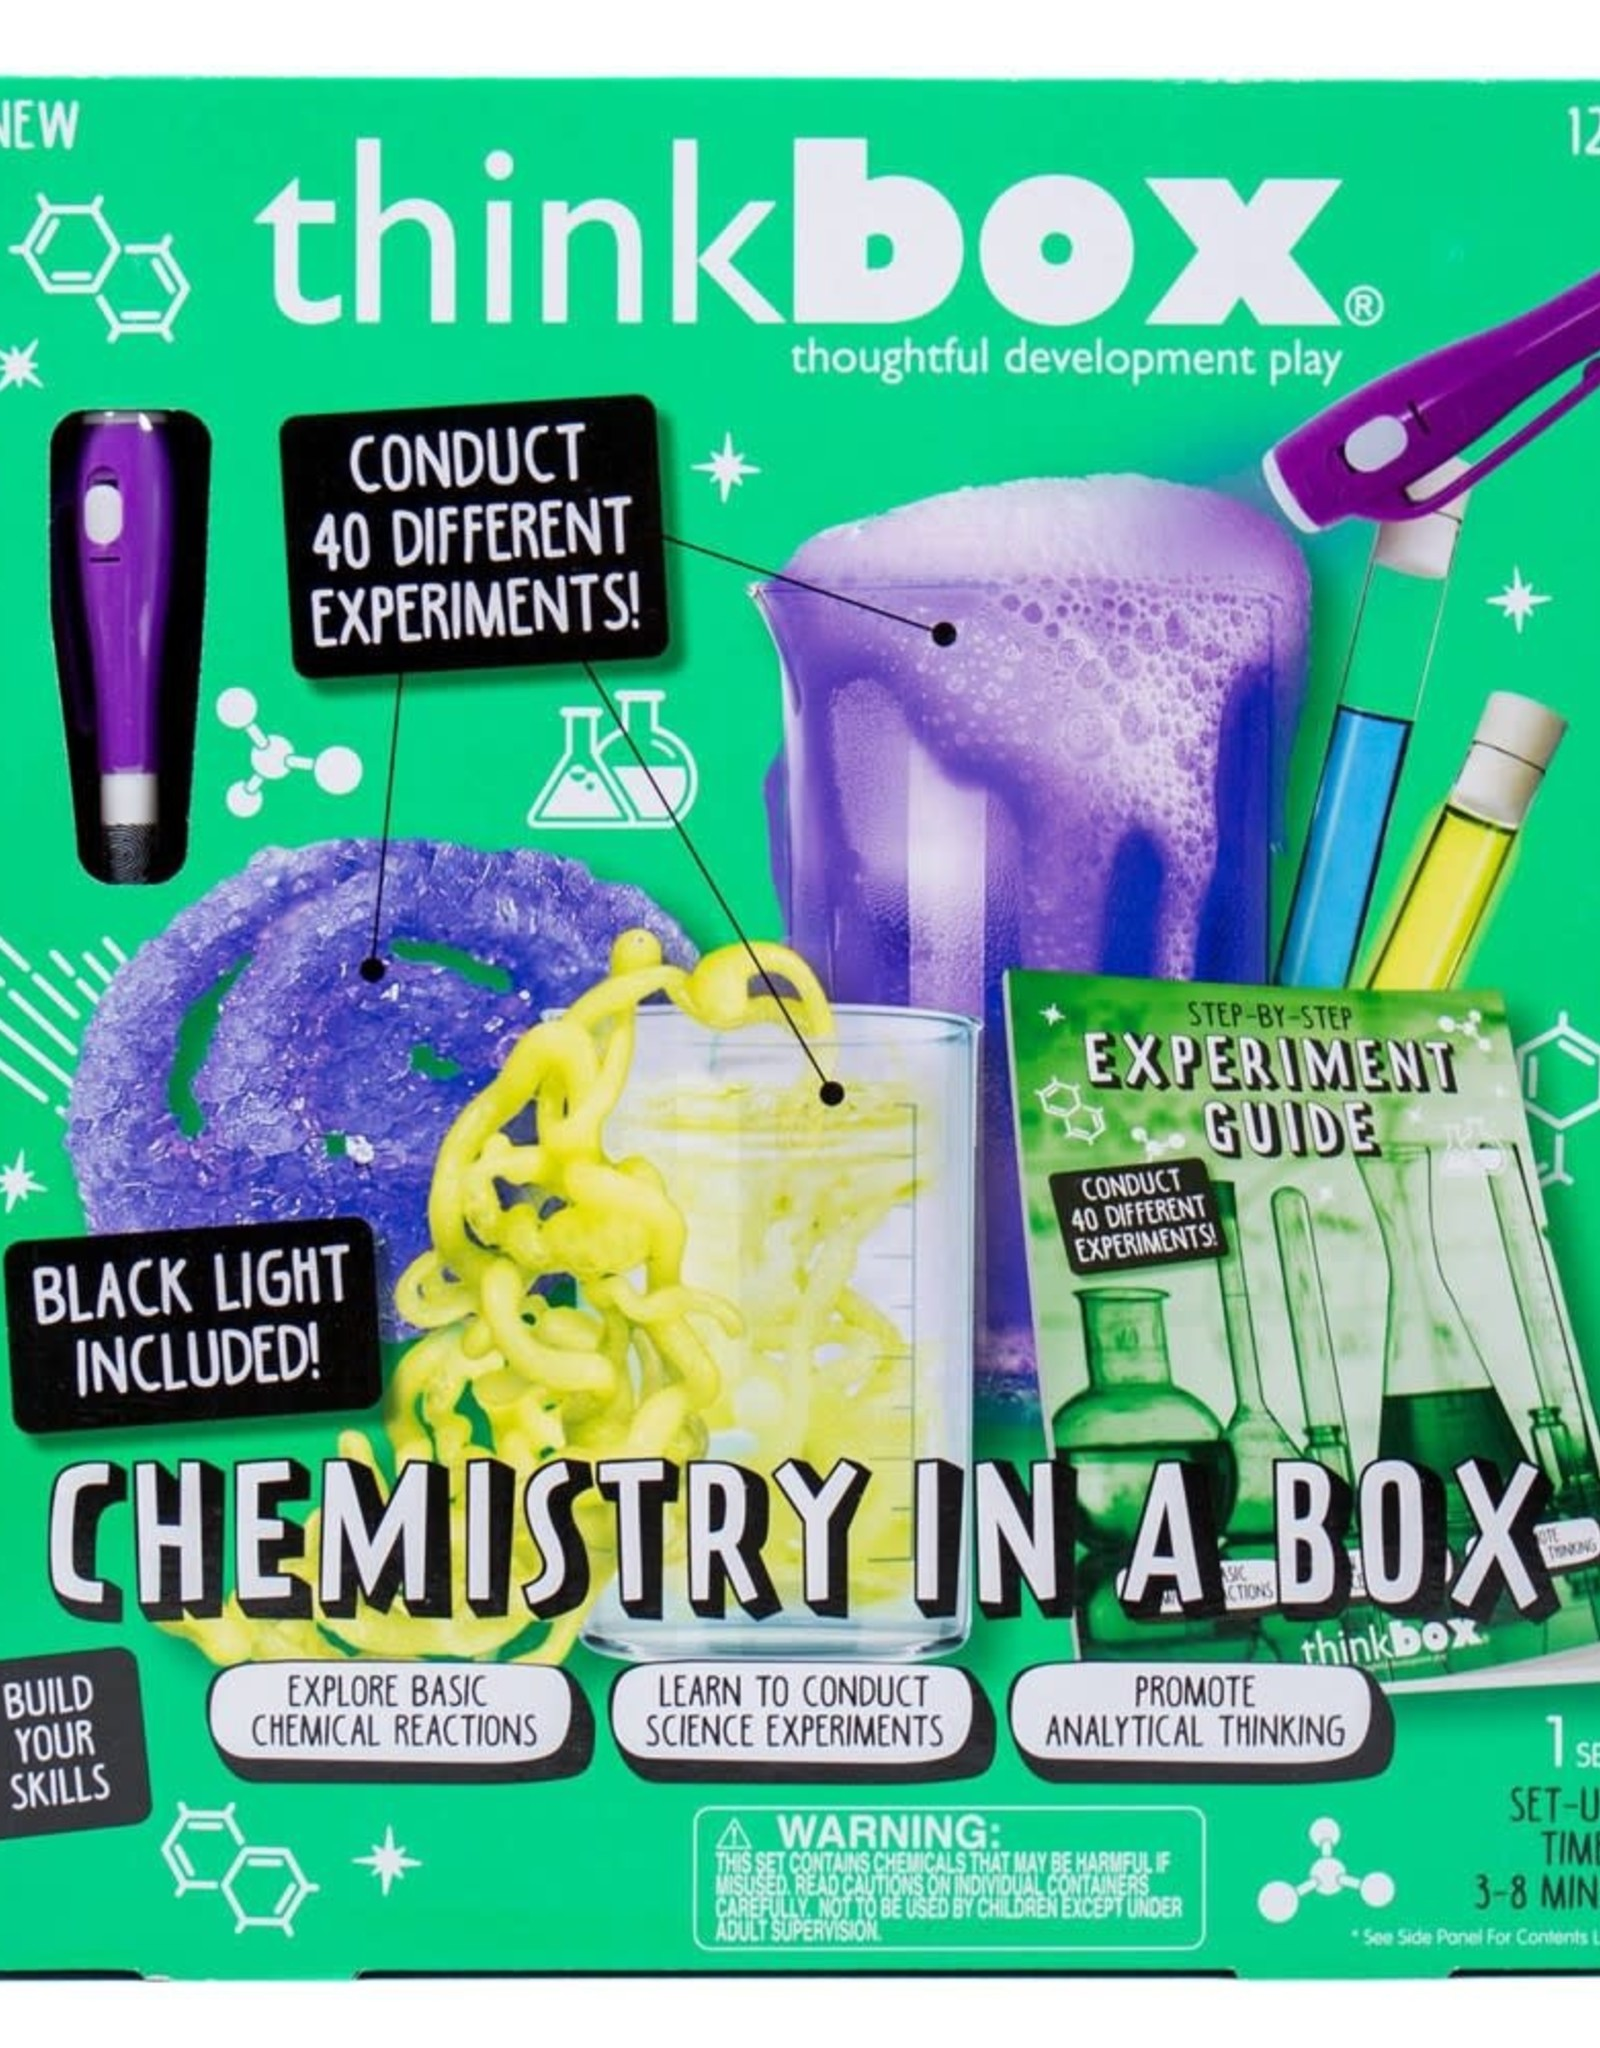 THINKBOX CHEMISTRY IN A BOX